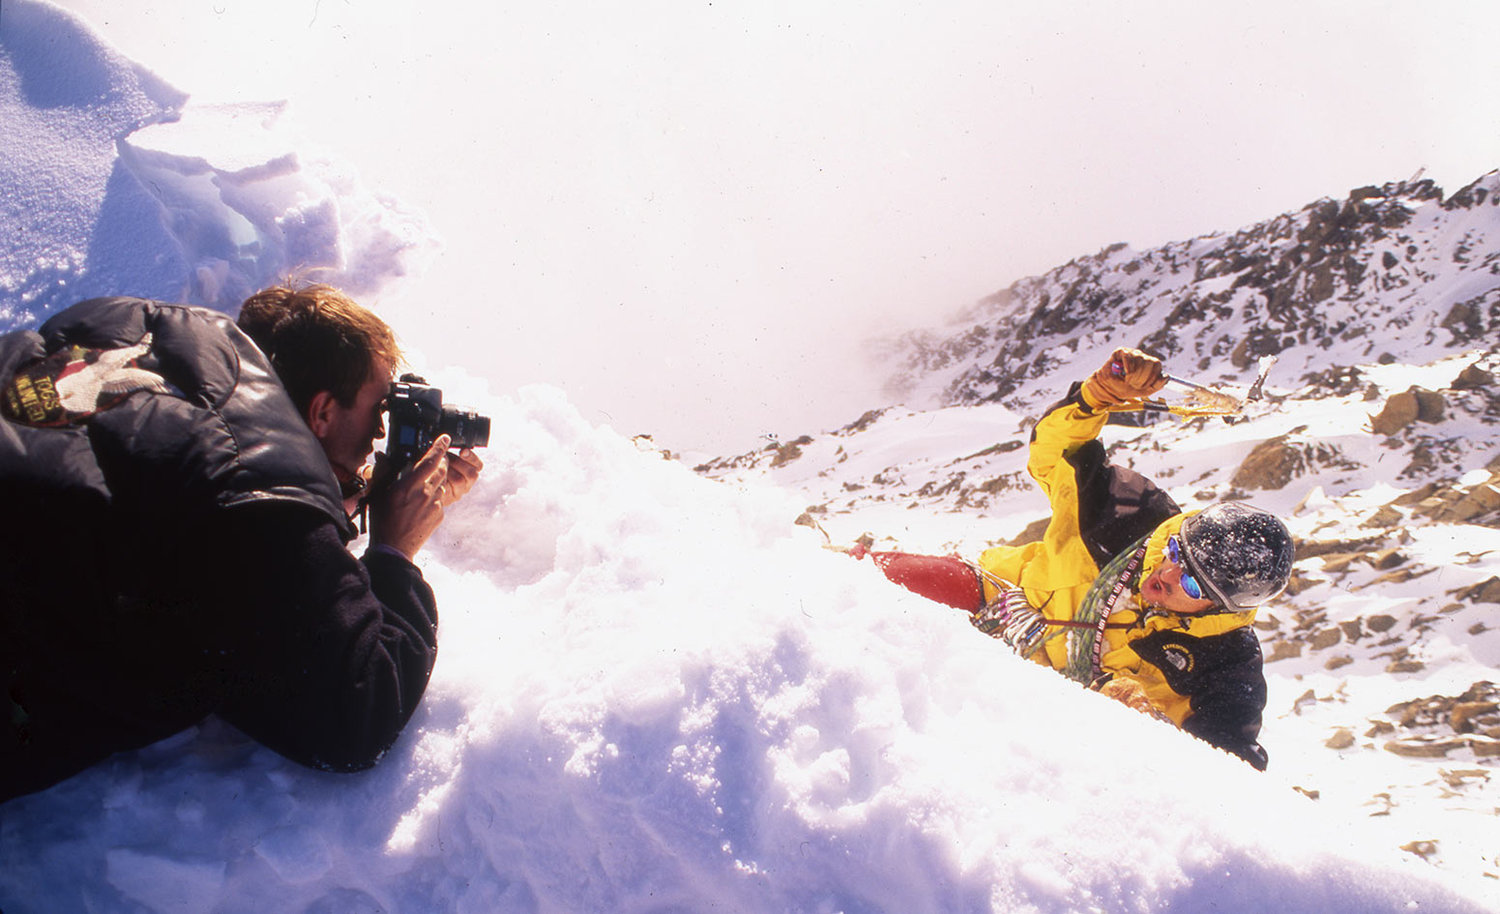 Photographing a NIKON campaign on top of Mount Blanc in Chamonix/France